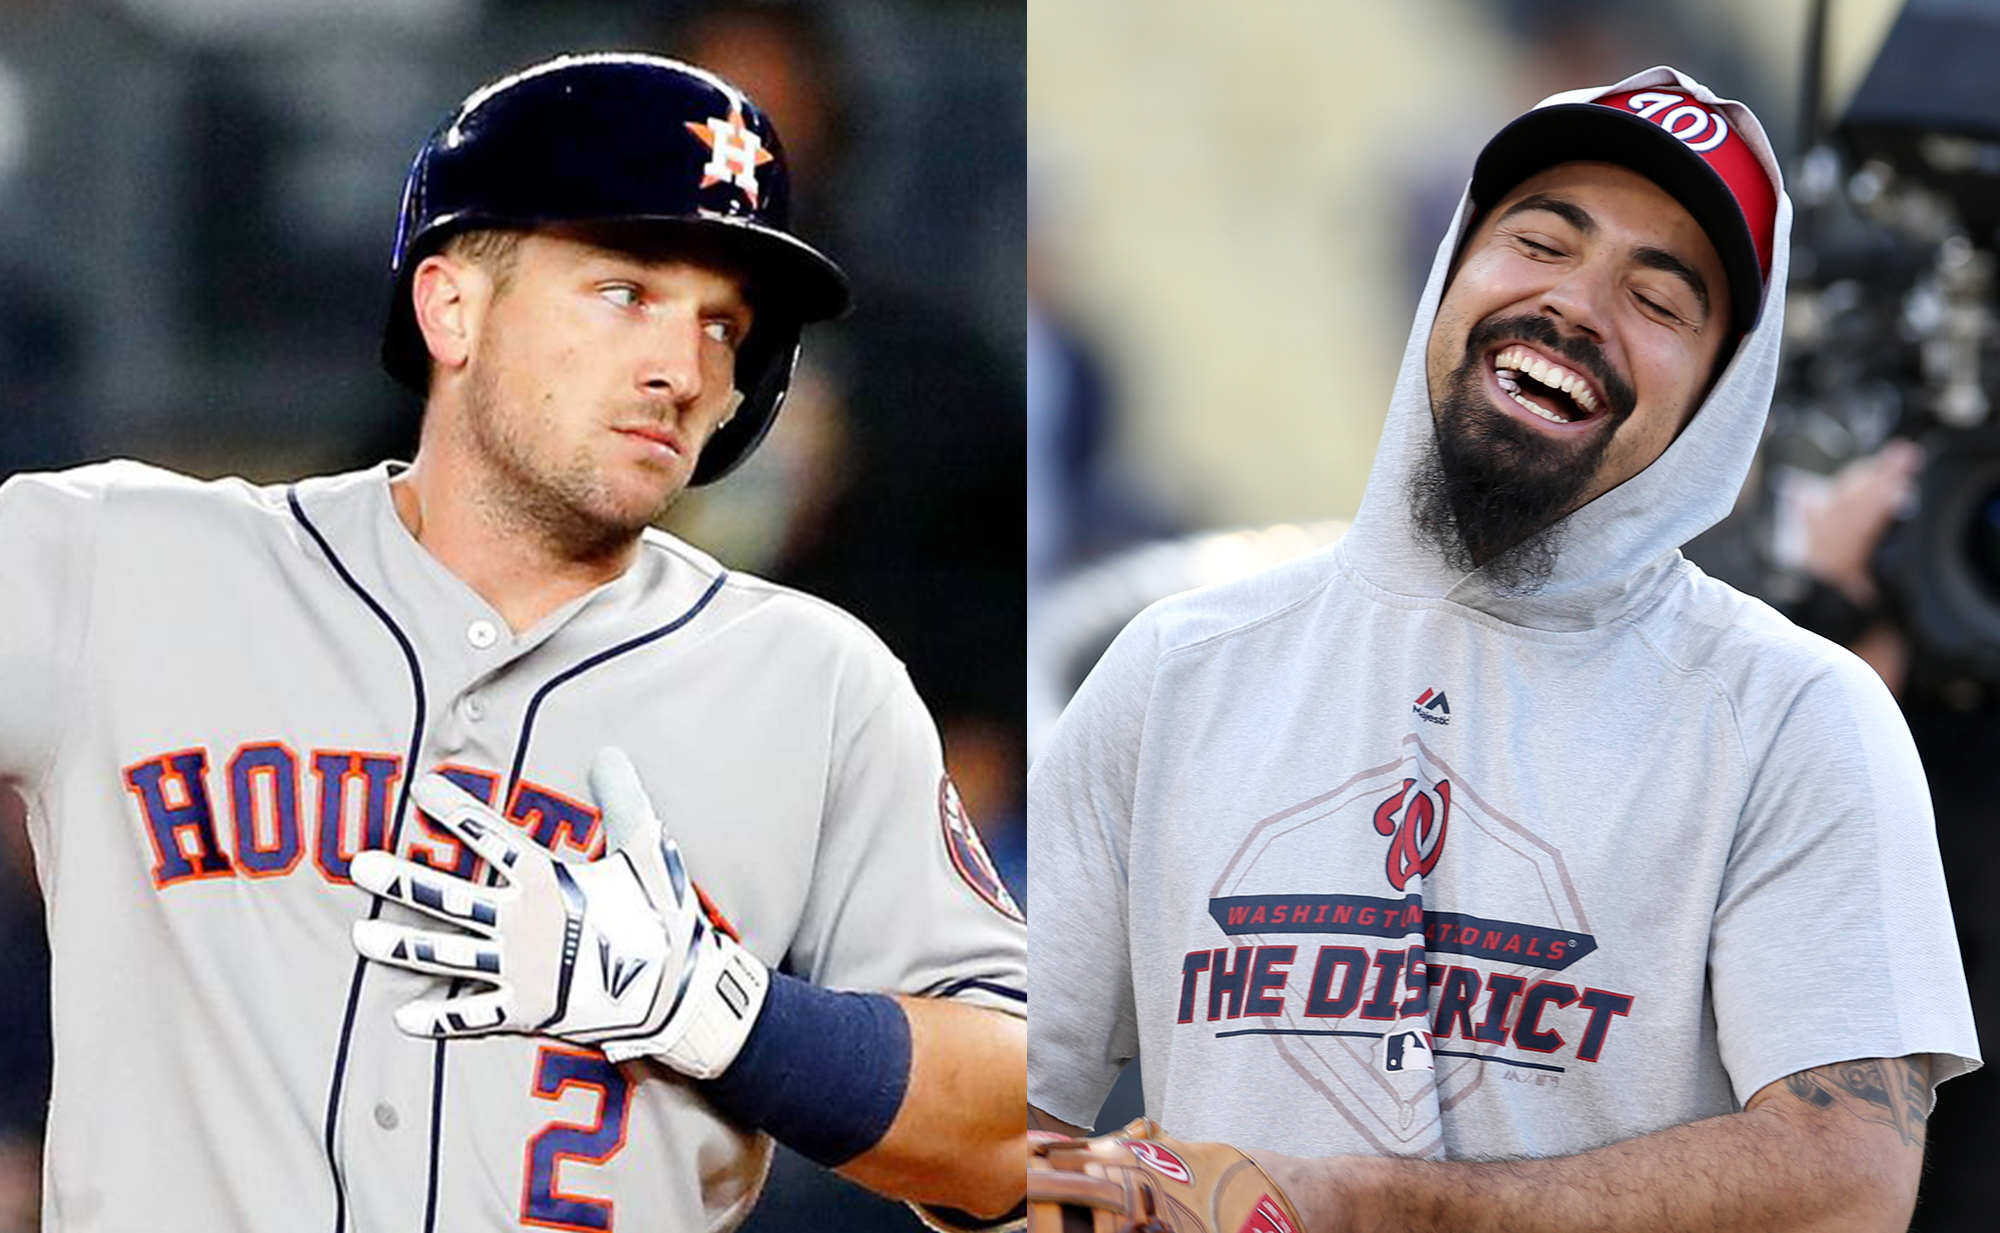 Alex Bregman and Anthony Rendon give us the best third base World Series matchup in decades